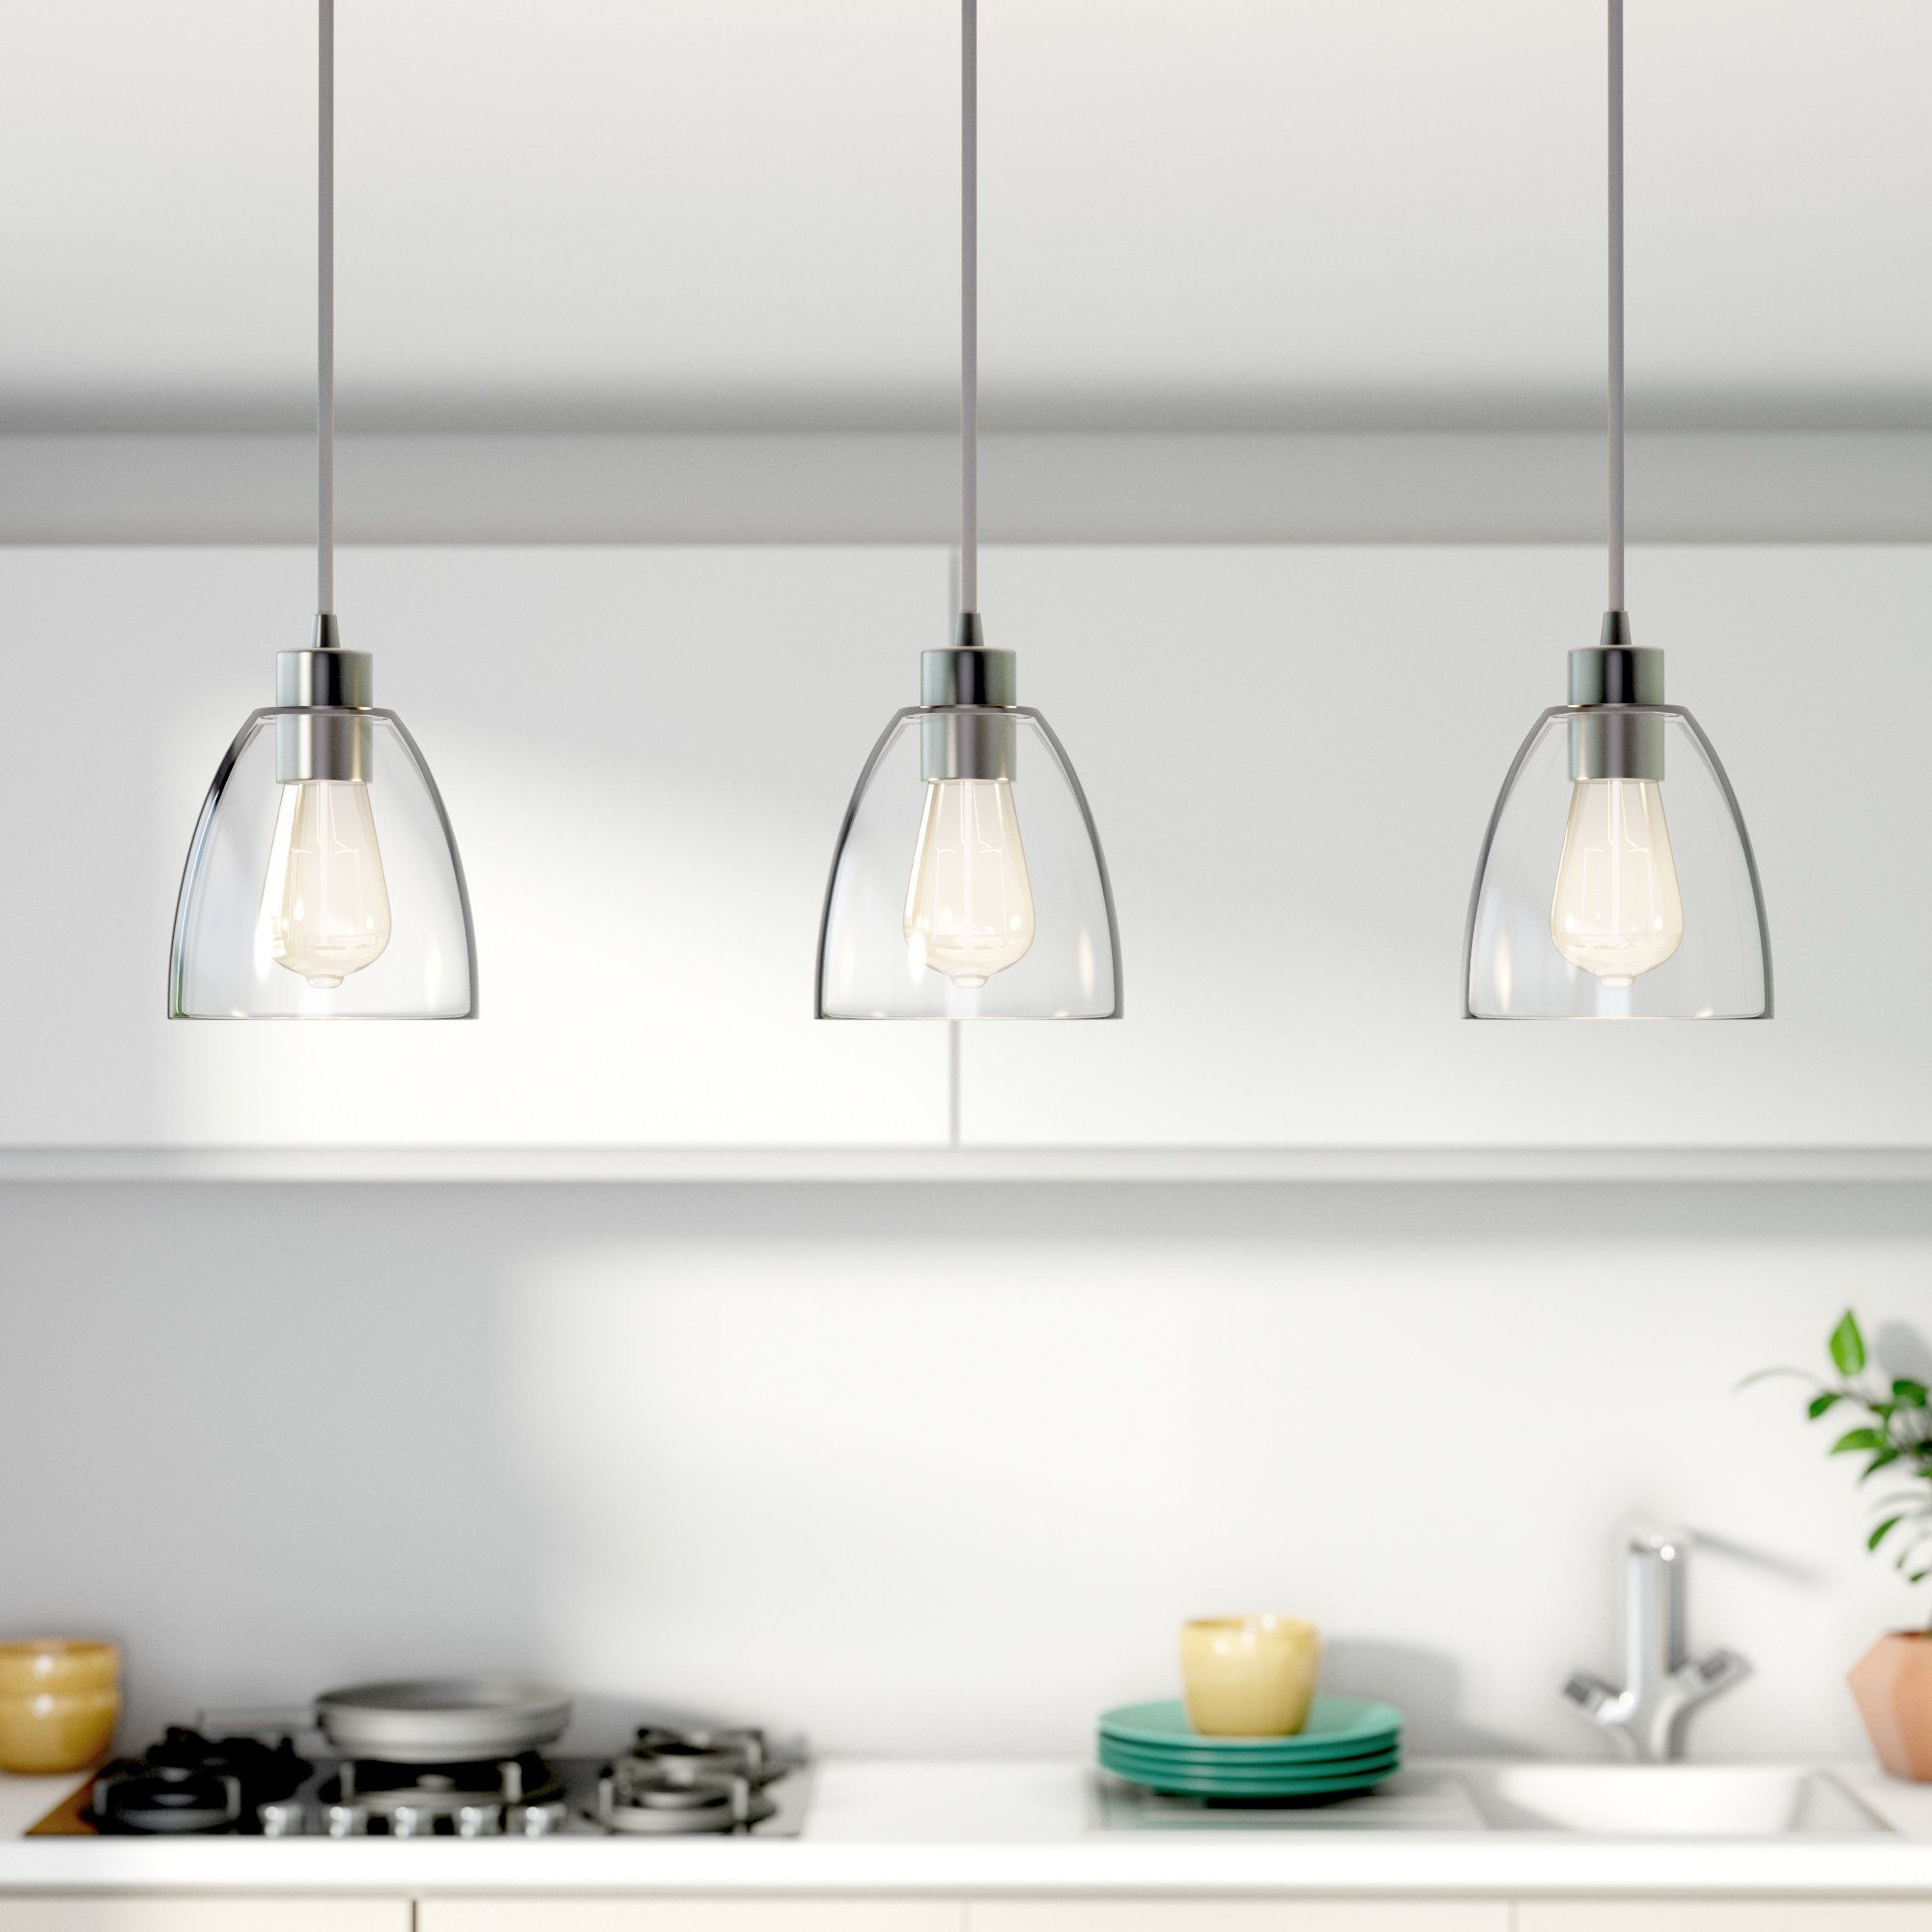 Kitchen Pendants Cadorette 3 Light Kitchen Island Pendant Products In